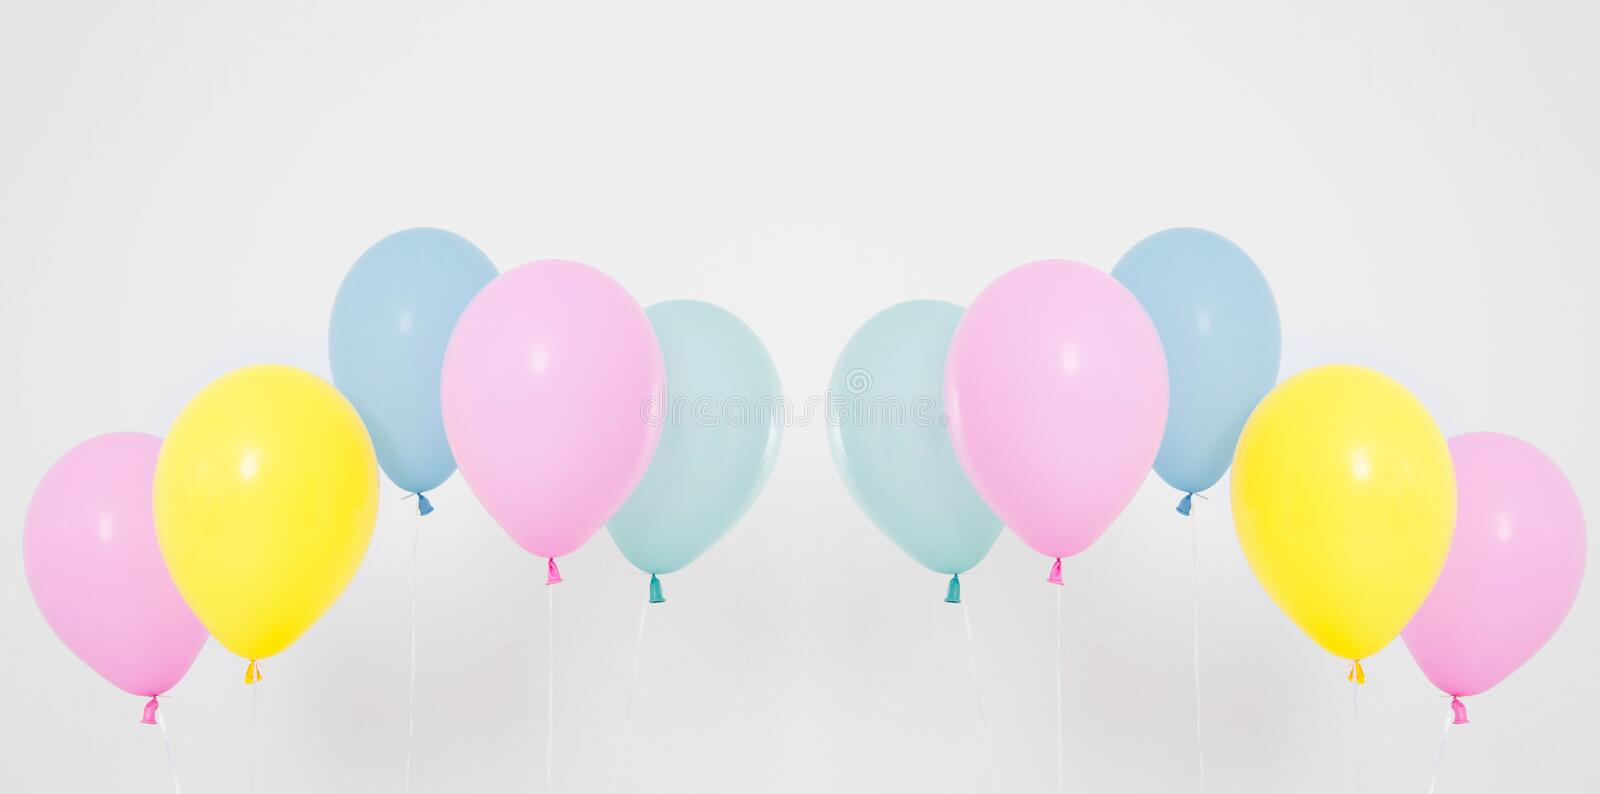 Colorful party balloons background set, collage. Isolated on white. Copy space.  royalty free stock photos